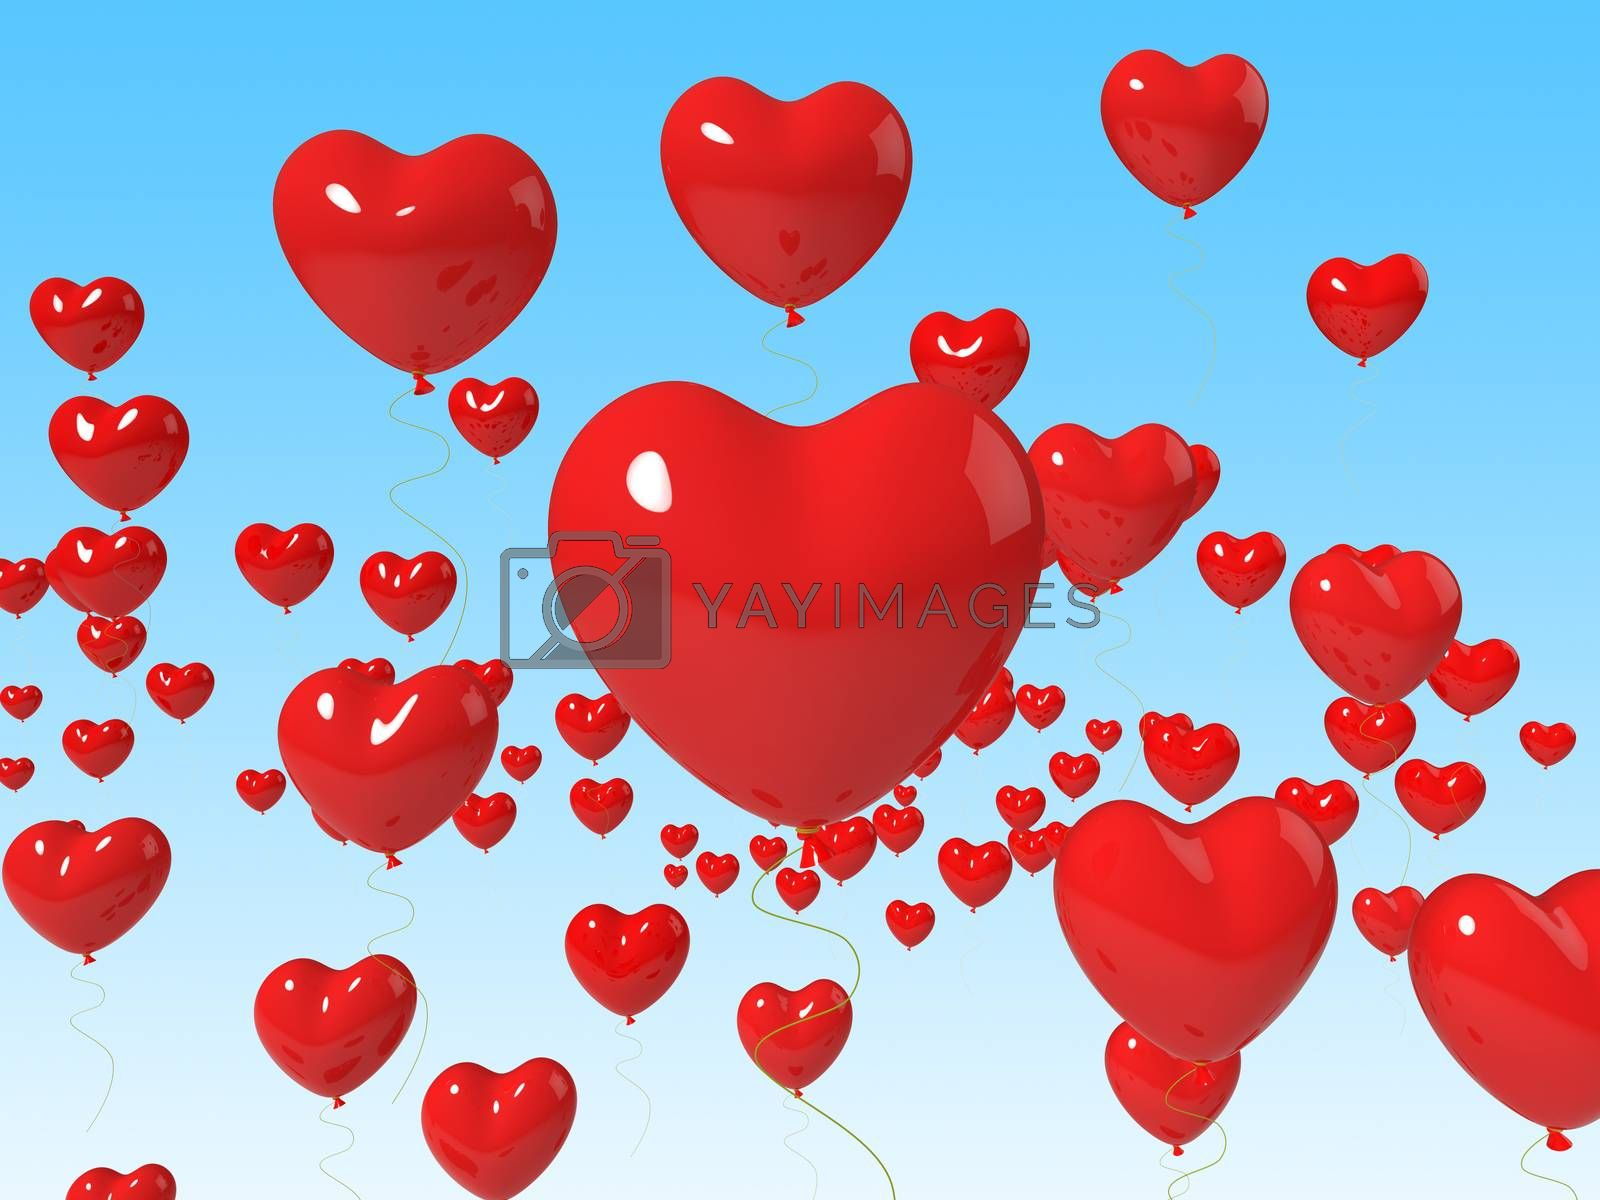 Heart Balloons Floating Meaning Romance Passion And Love